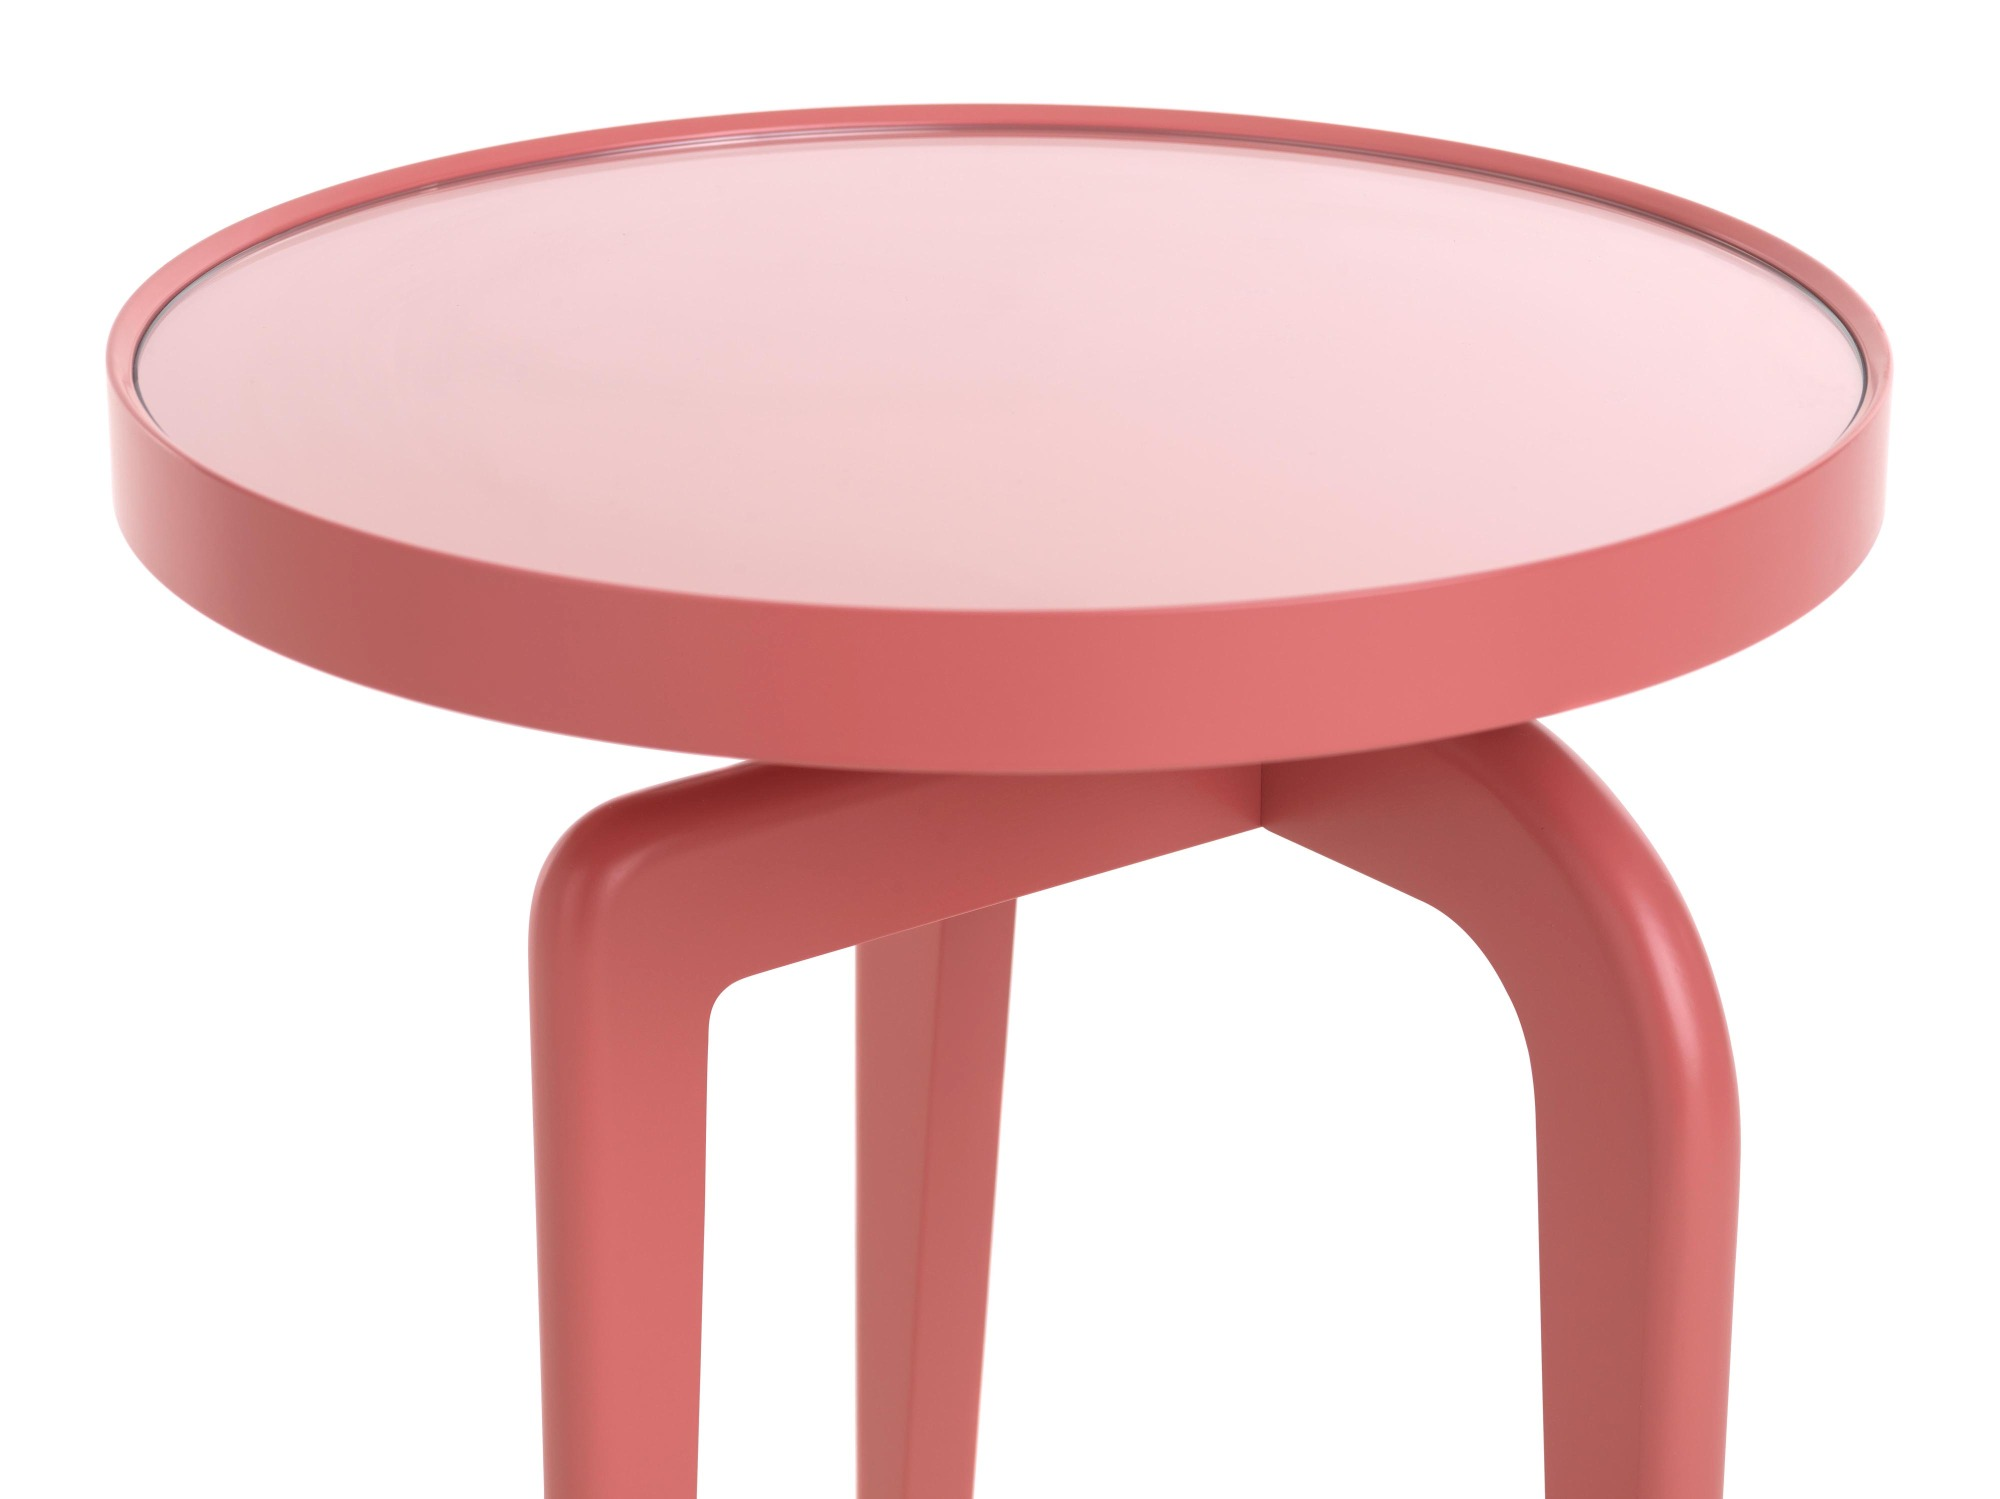 Ant side table, clear glass inset tops Schönbuch